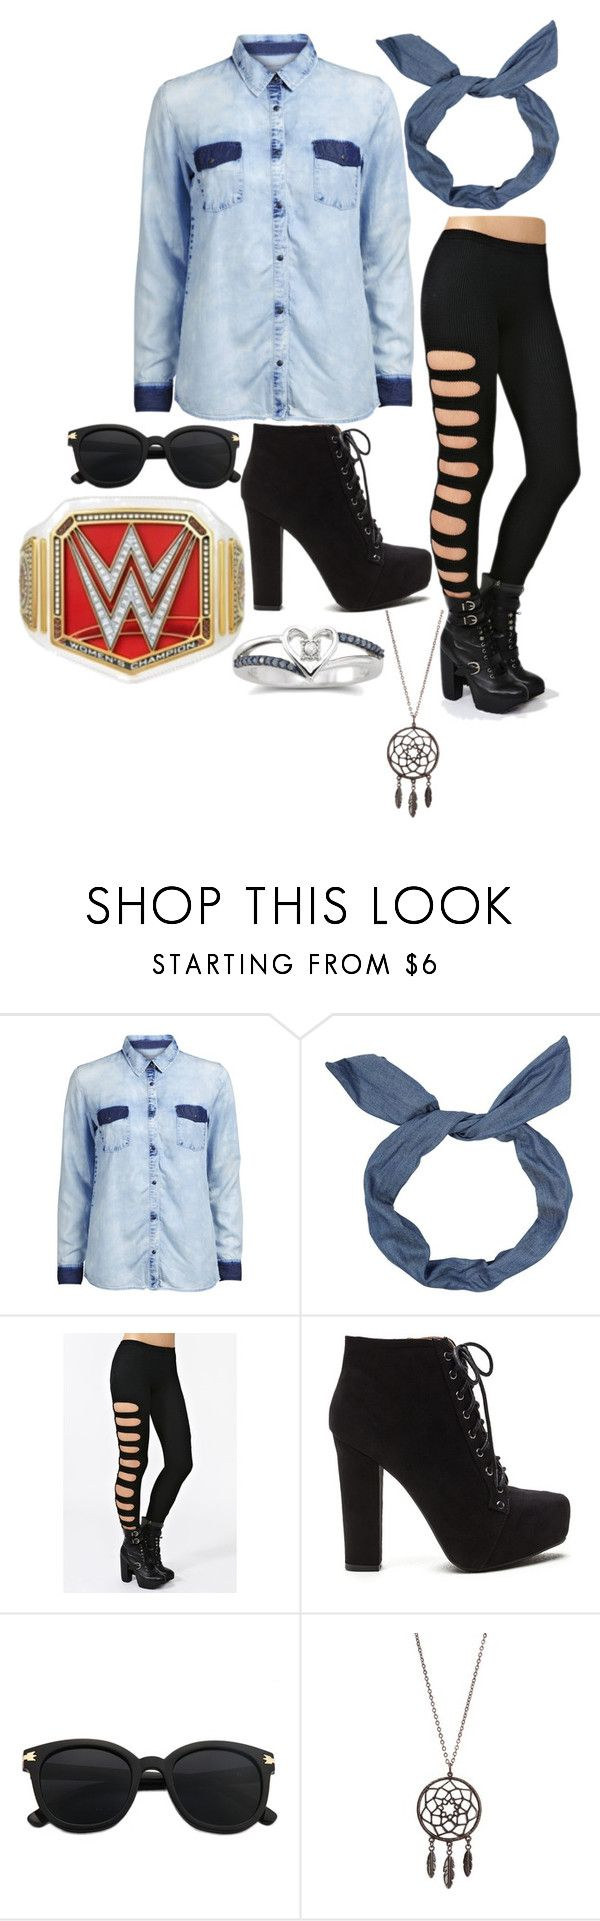 """""""First Meeting With Colin Cassady"""" by thedarkestofhearts ❤ liked on Polyvore featuring ONLY"""